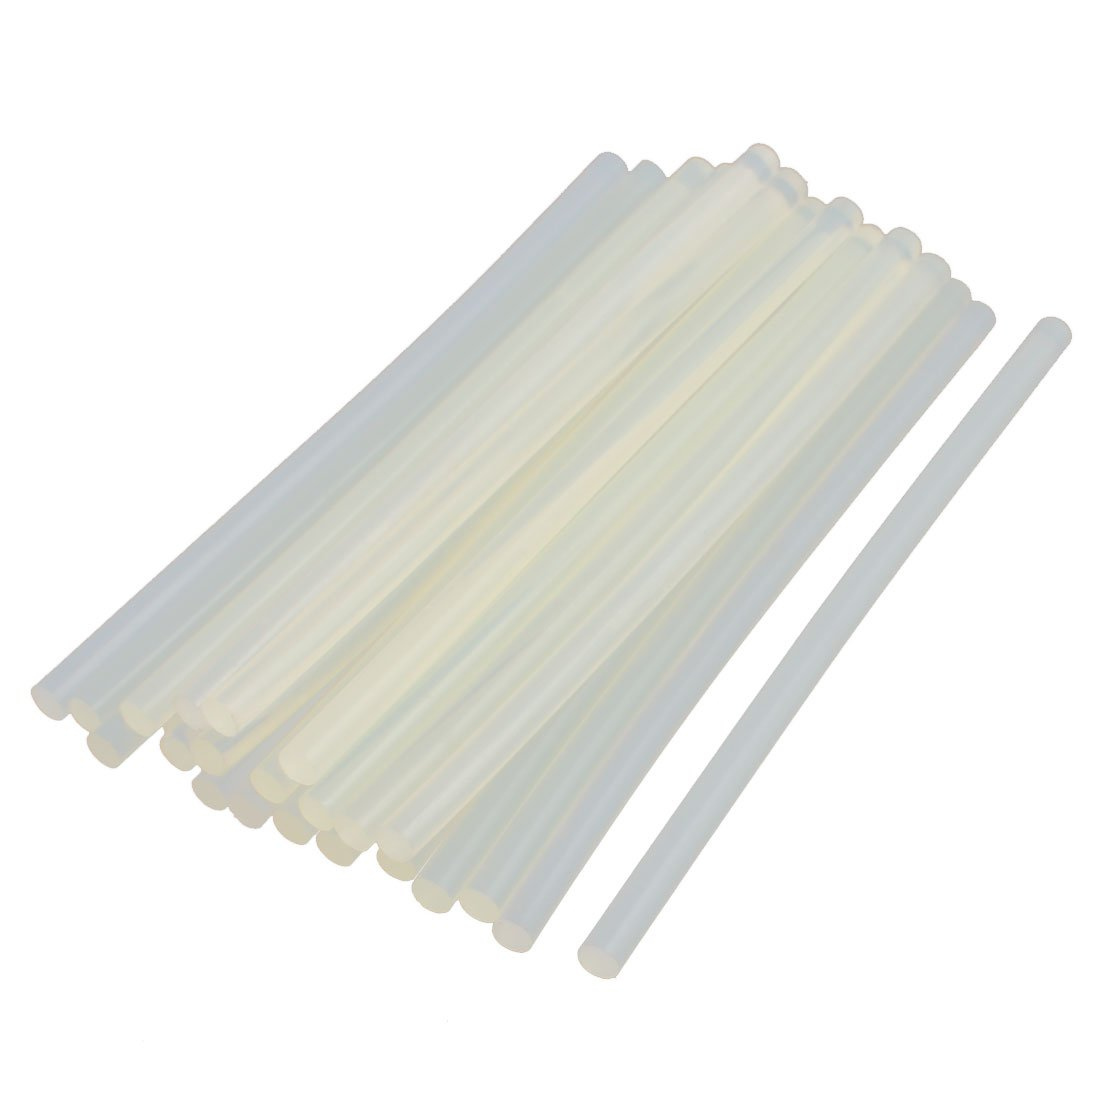 uxcell 23 Pcs White Translucence 7mm Dia Soldering Iron Hot Melt Glue Stick 168mm Length